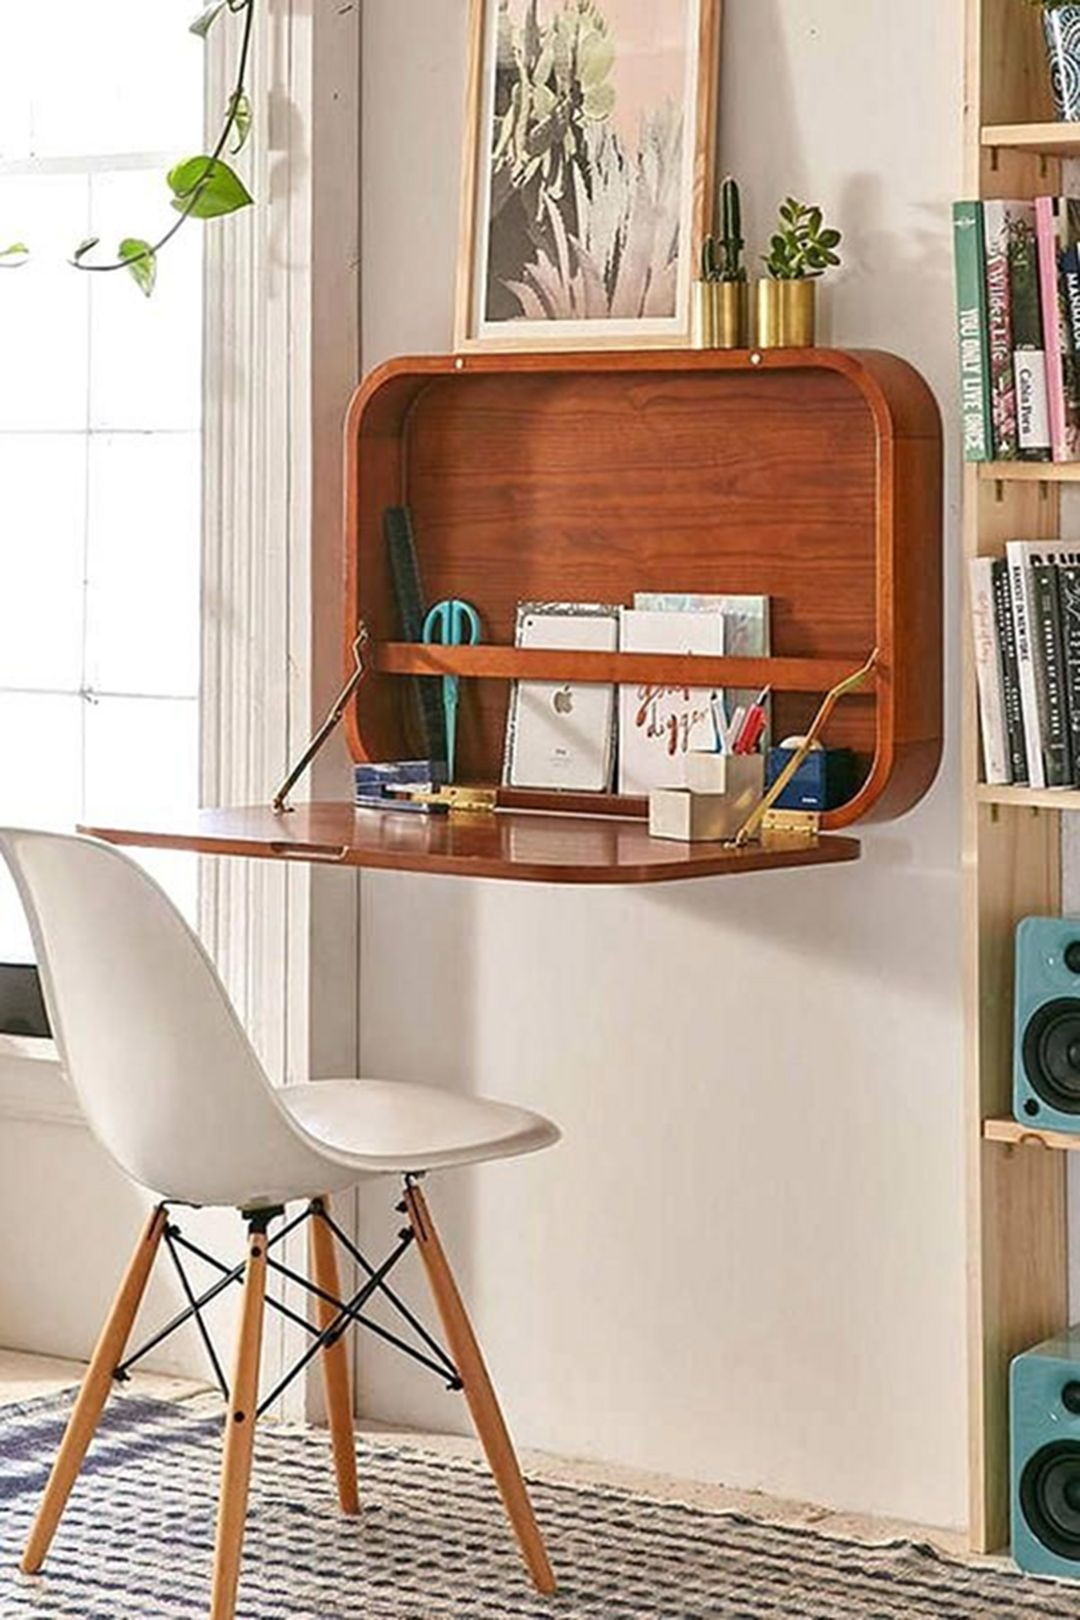 15 Fantastic Small Bedroom Desk Designs For Small Bedroom Ideas With Images Small Bedroom Desk Small Bedroom Makeover Desks For Small Spaces